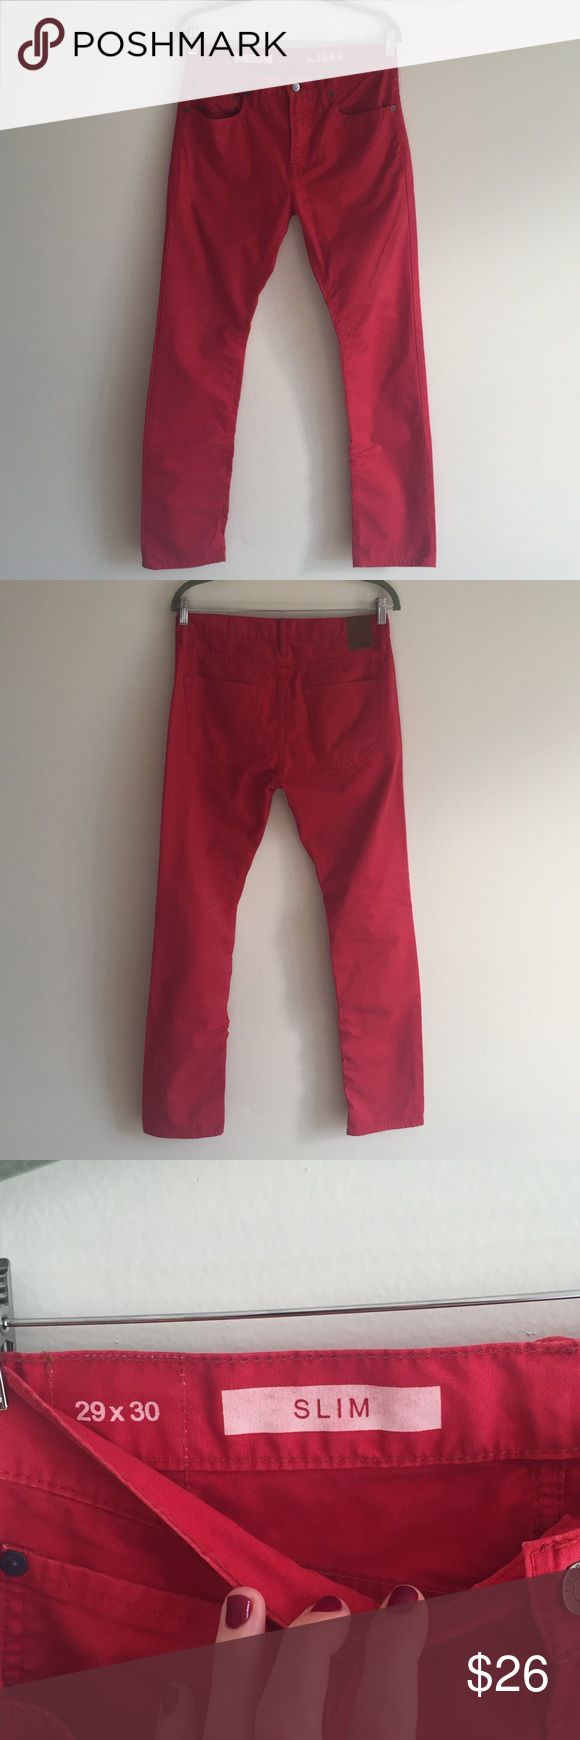 Men's Gap Red Pants Men's Gap Red Pants in size 29x30 in excellent condition. Slim fit and made of 100% cotton. Perfect color for summer! GAP Jeans Slim